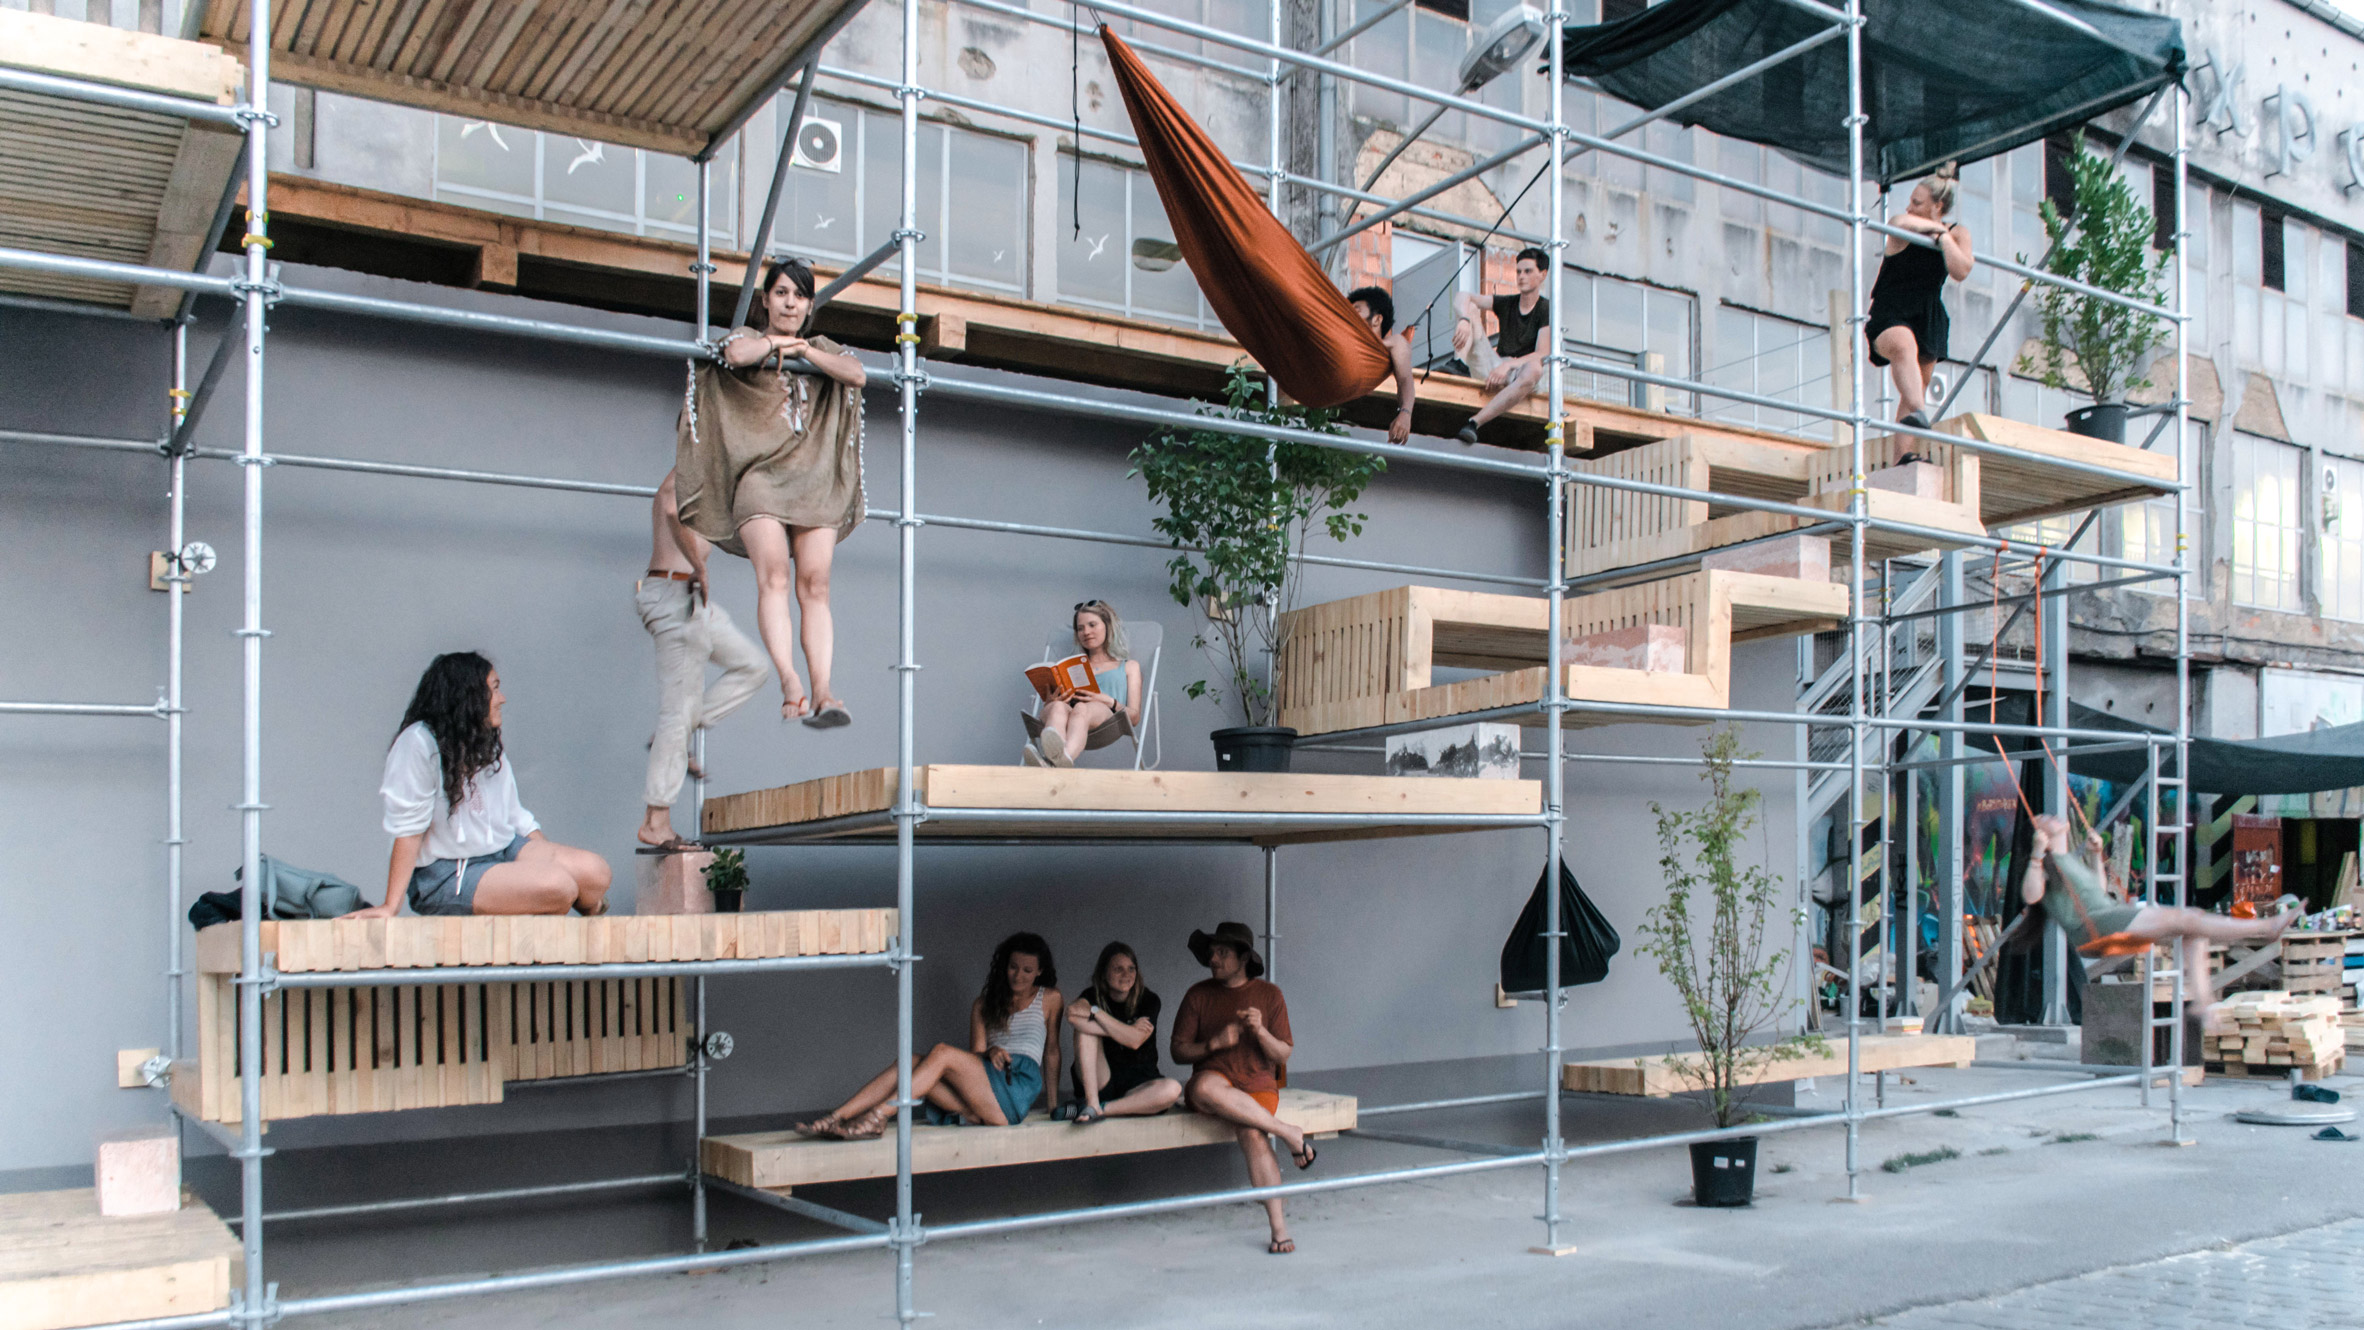 Tiered platforms create nifty street furniture